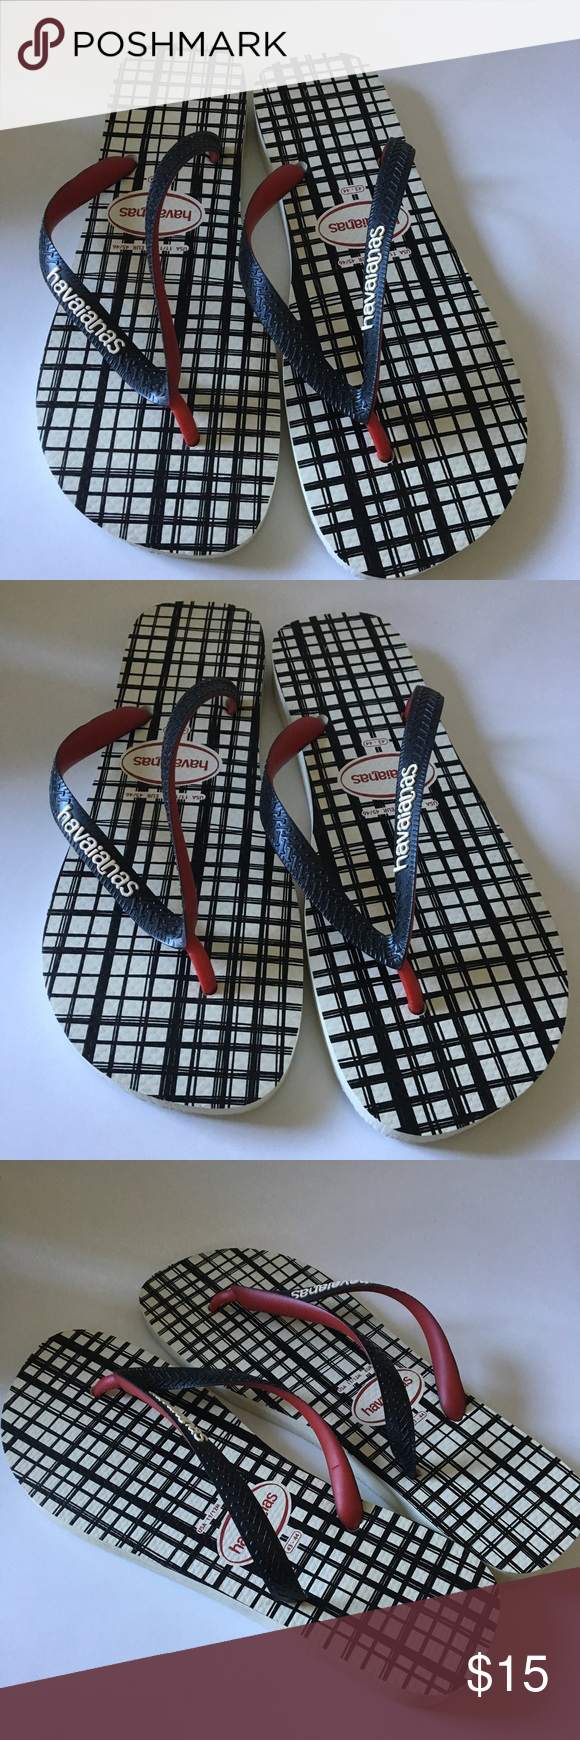 19f6f021cf15e Mens Black Plaid Havaianas Flip Flop 11 12 M Brand New Flip Flops Havaianas  Shoes Sandals   Flip-Flops